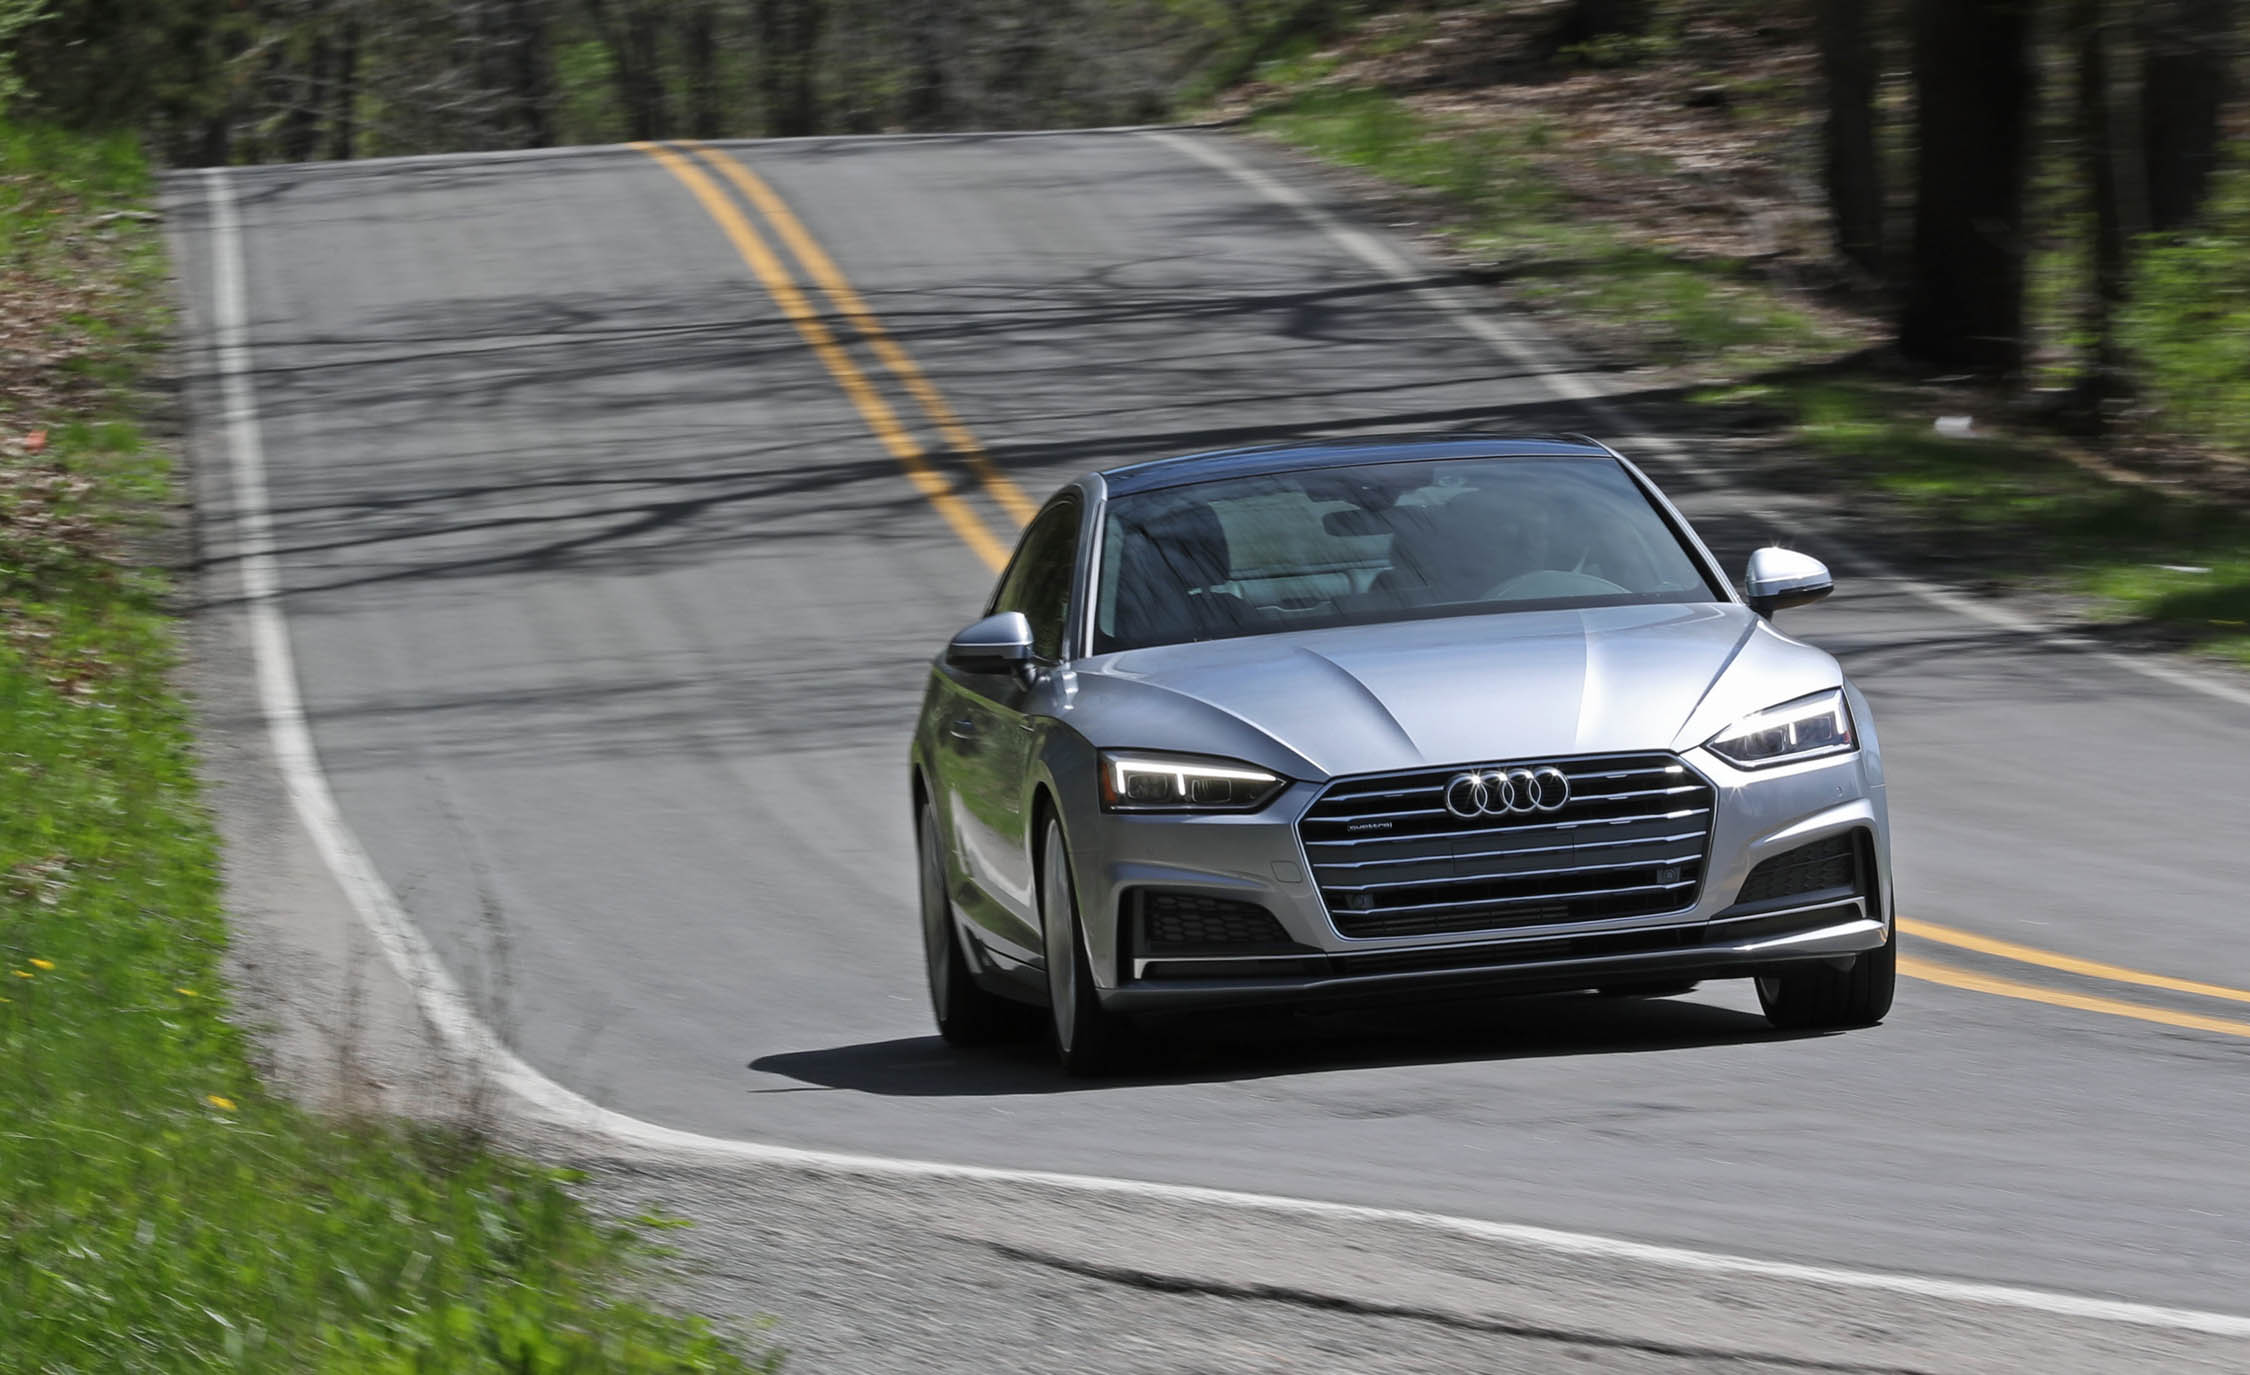 2018 Audi A5 Coupe Test Drive Front View (Photo 44 of 50)